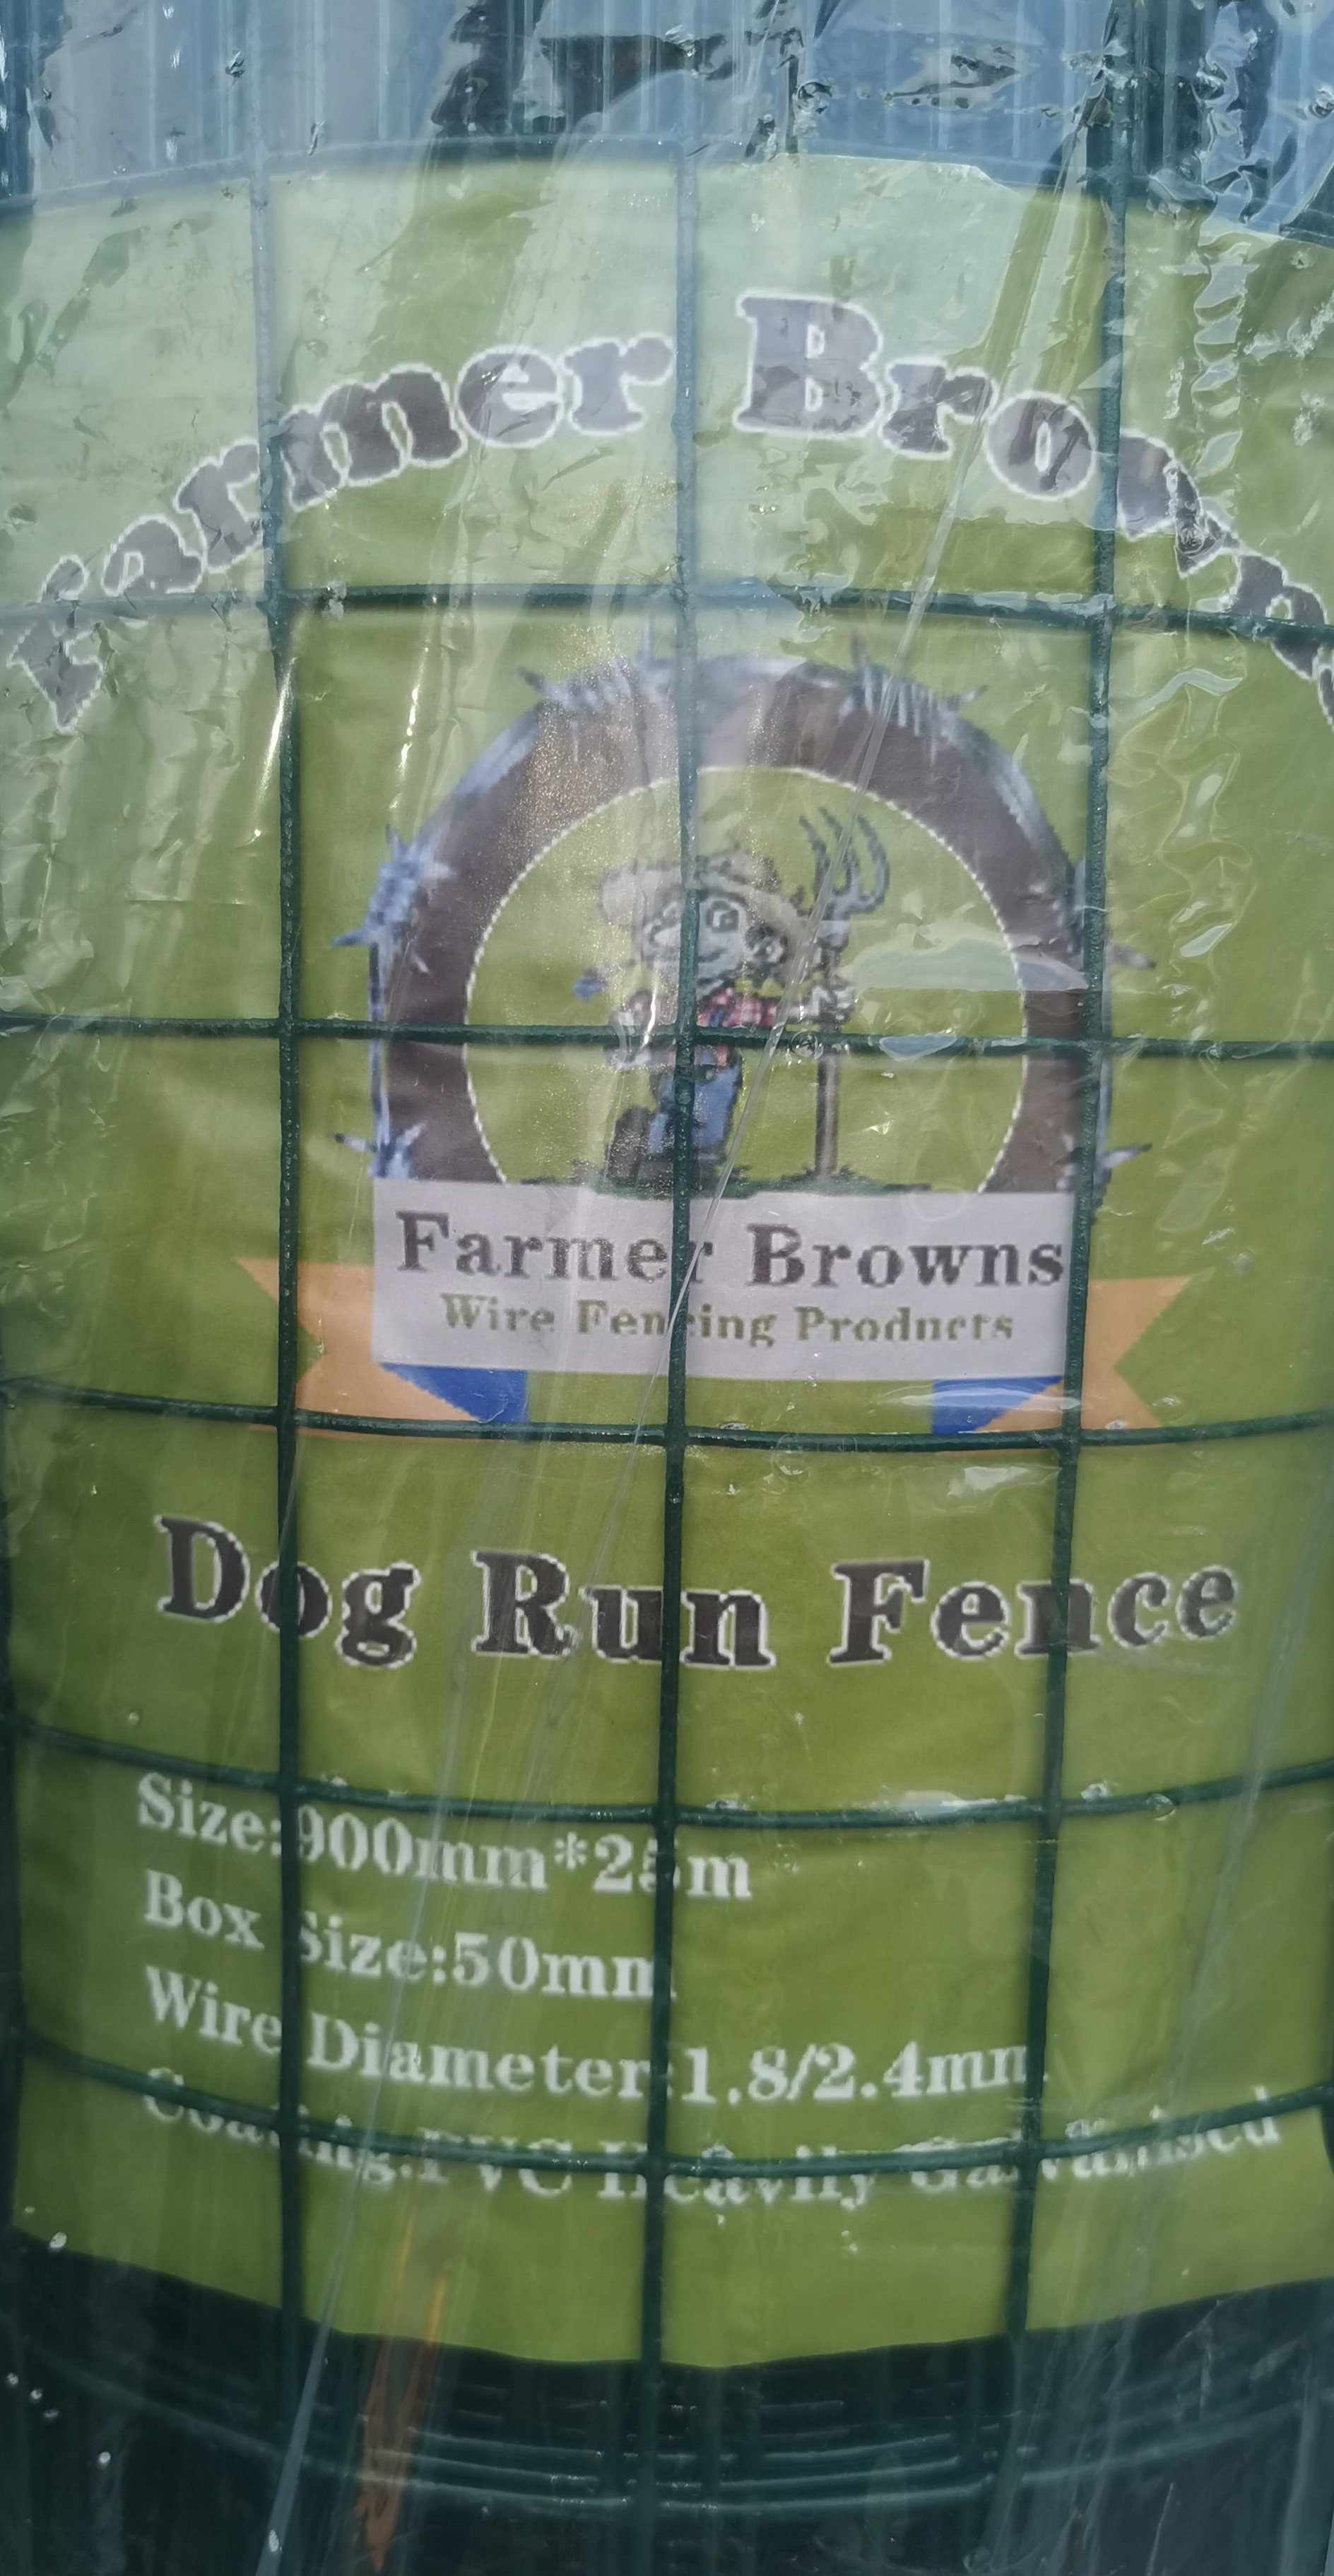 PVC Coated Green Dog Run Fence 900mm x 25m, 1.8/2.4mm, 50x50mm